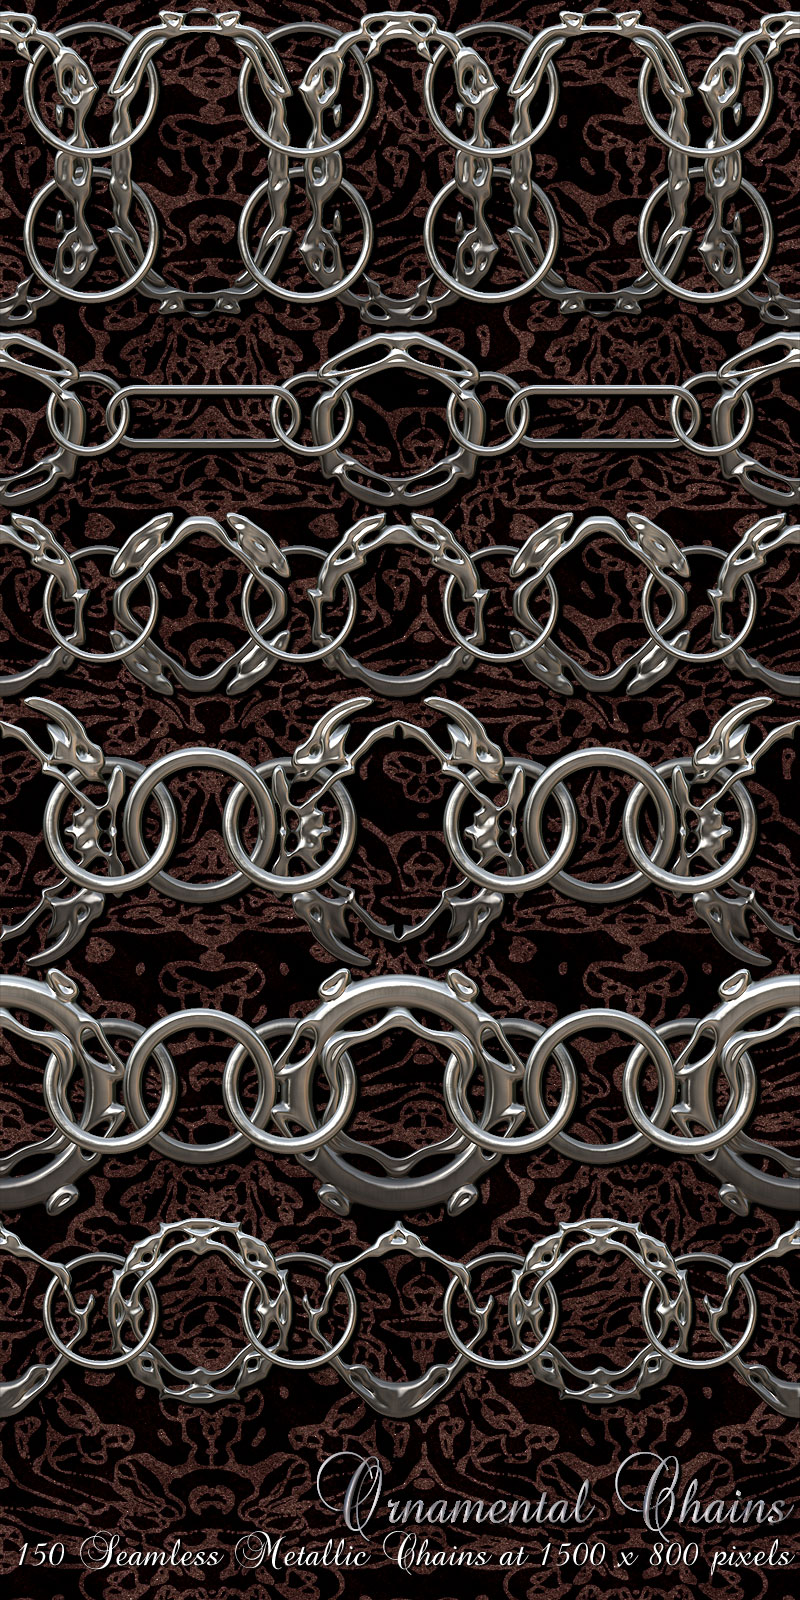 Ornamental Chains